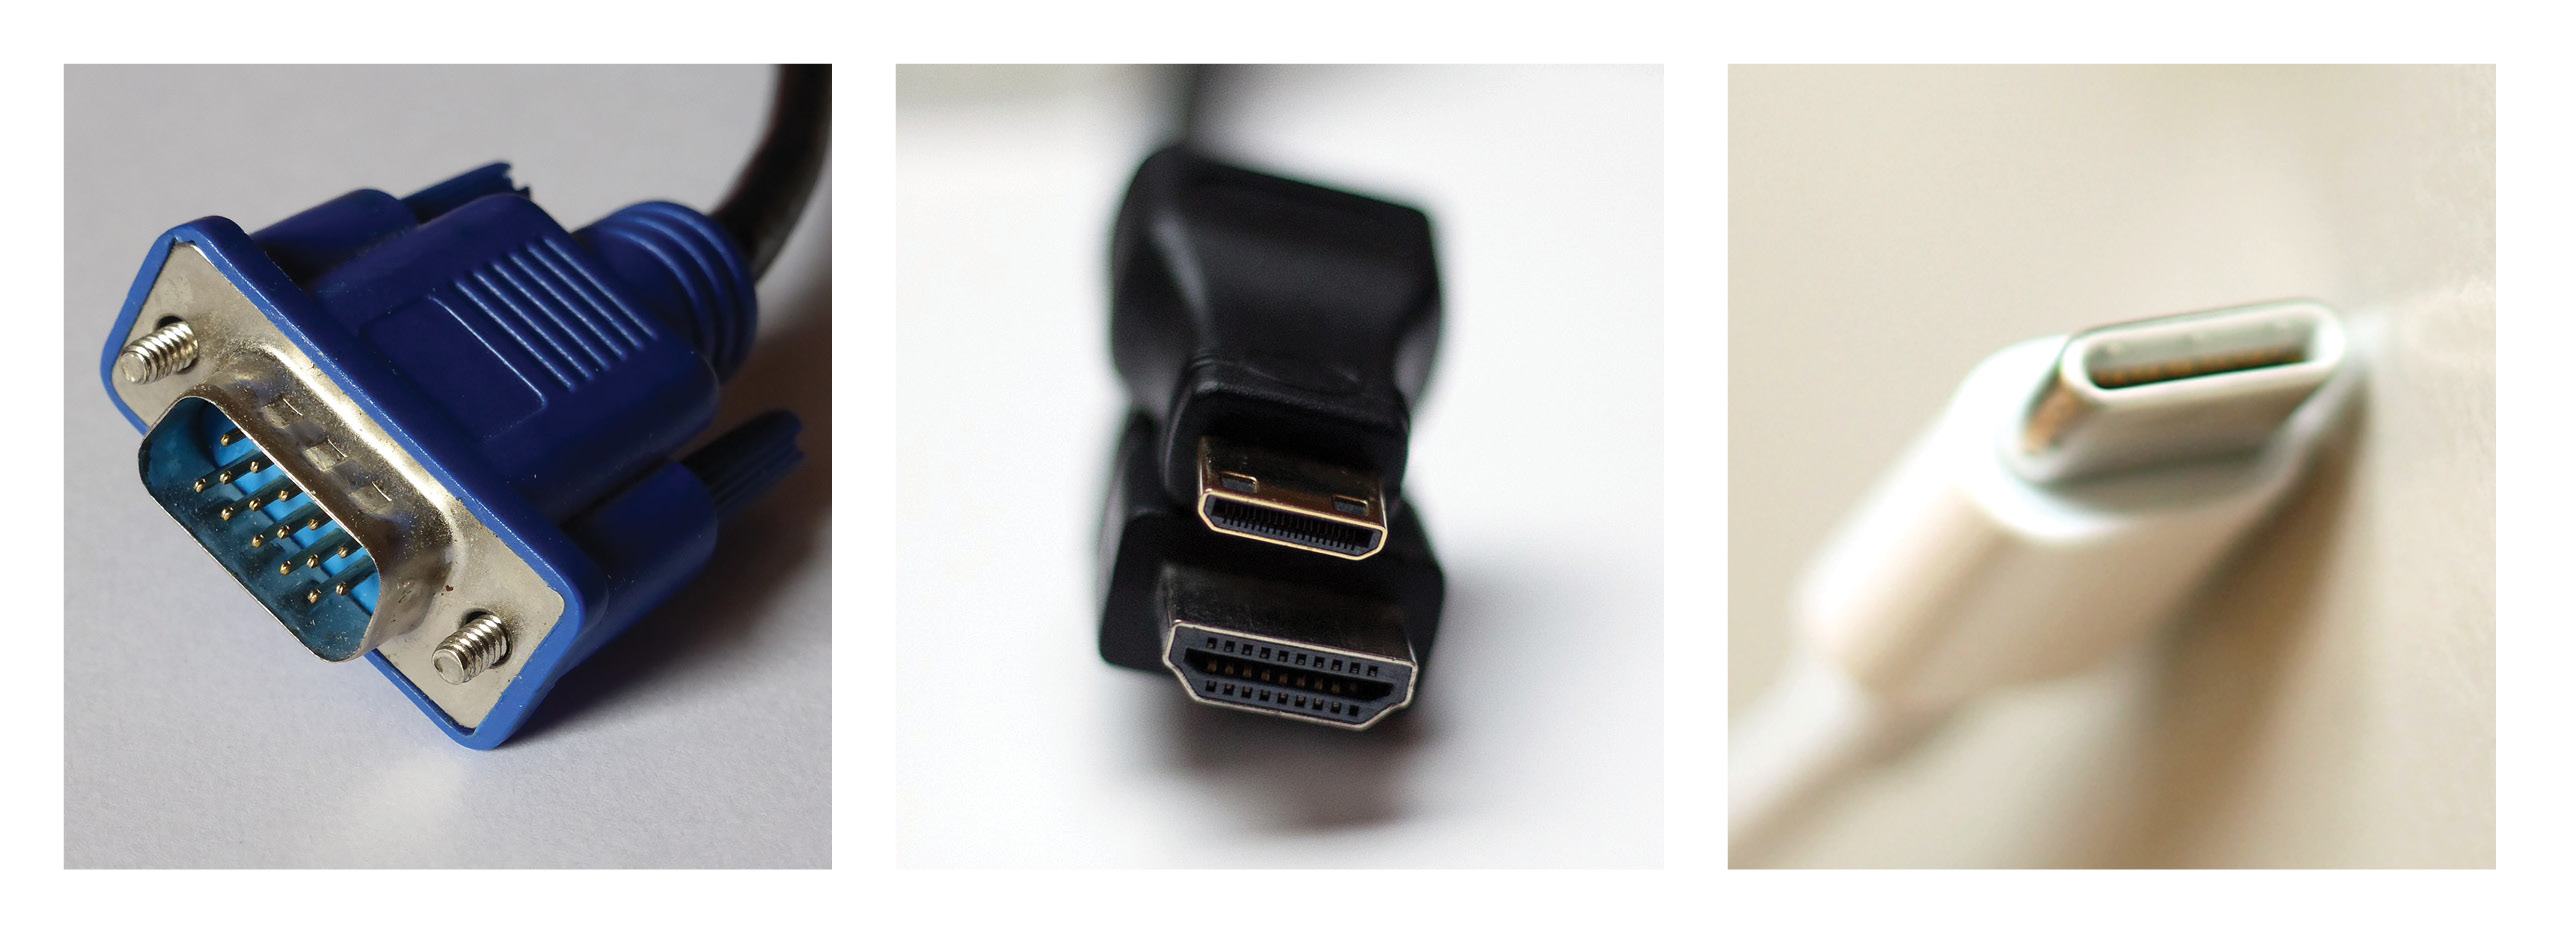 VGA, HDMI and USB-C connectors.